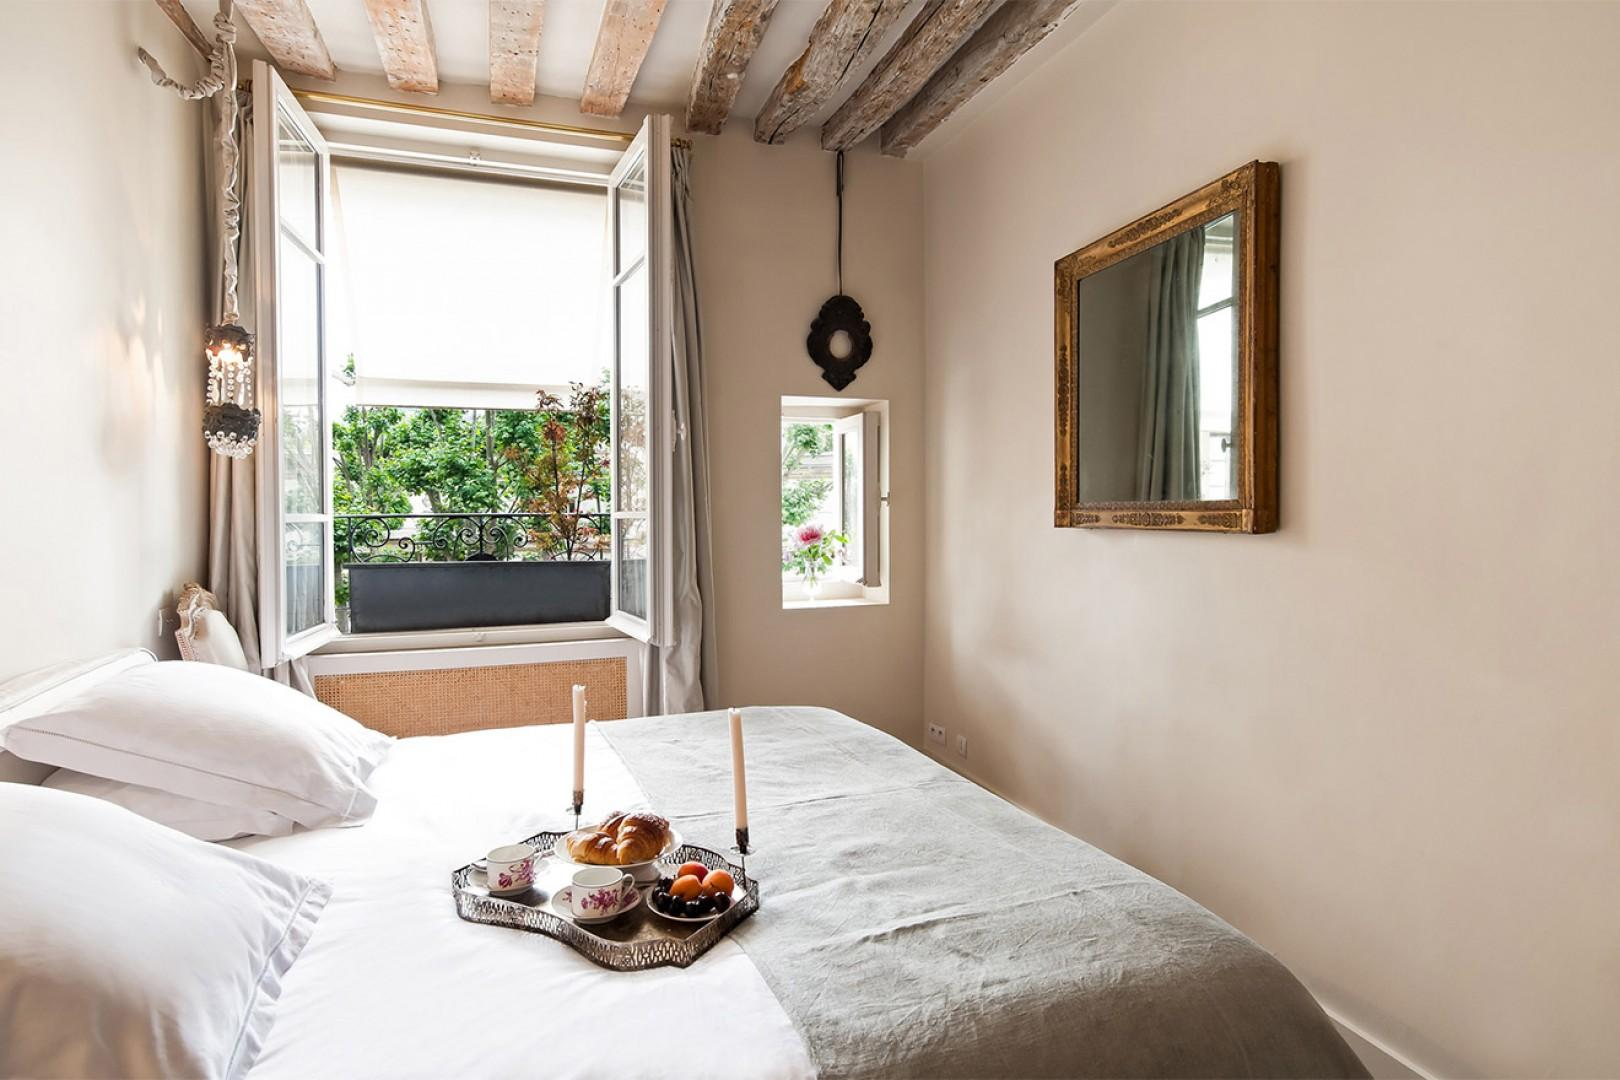 Wake up in the dreamy Paris bedroom with windows overlooking the street.